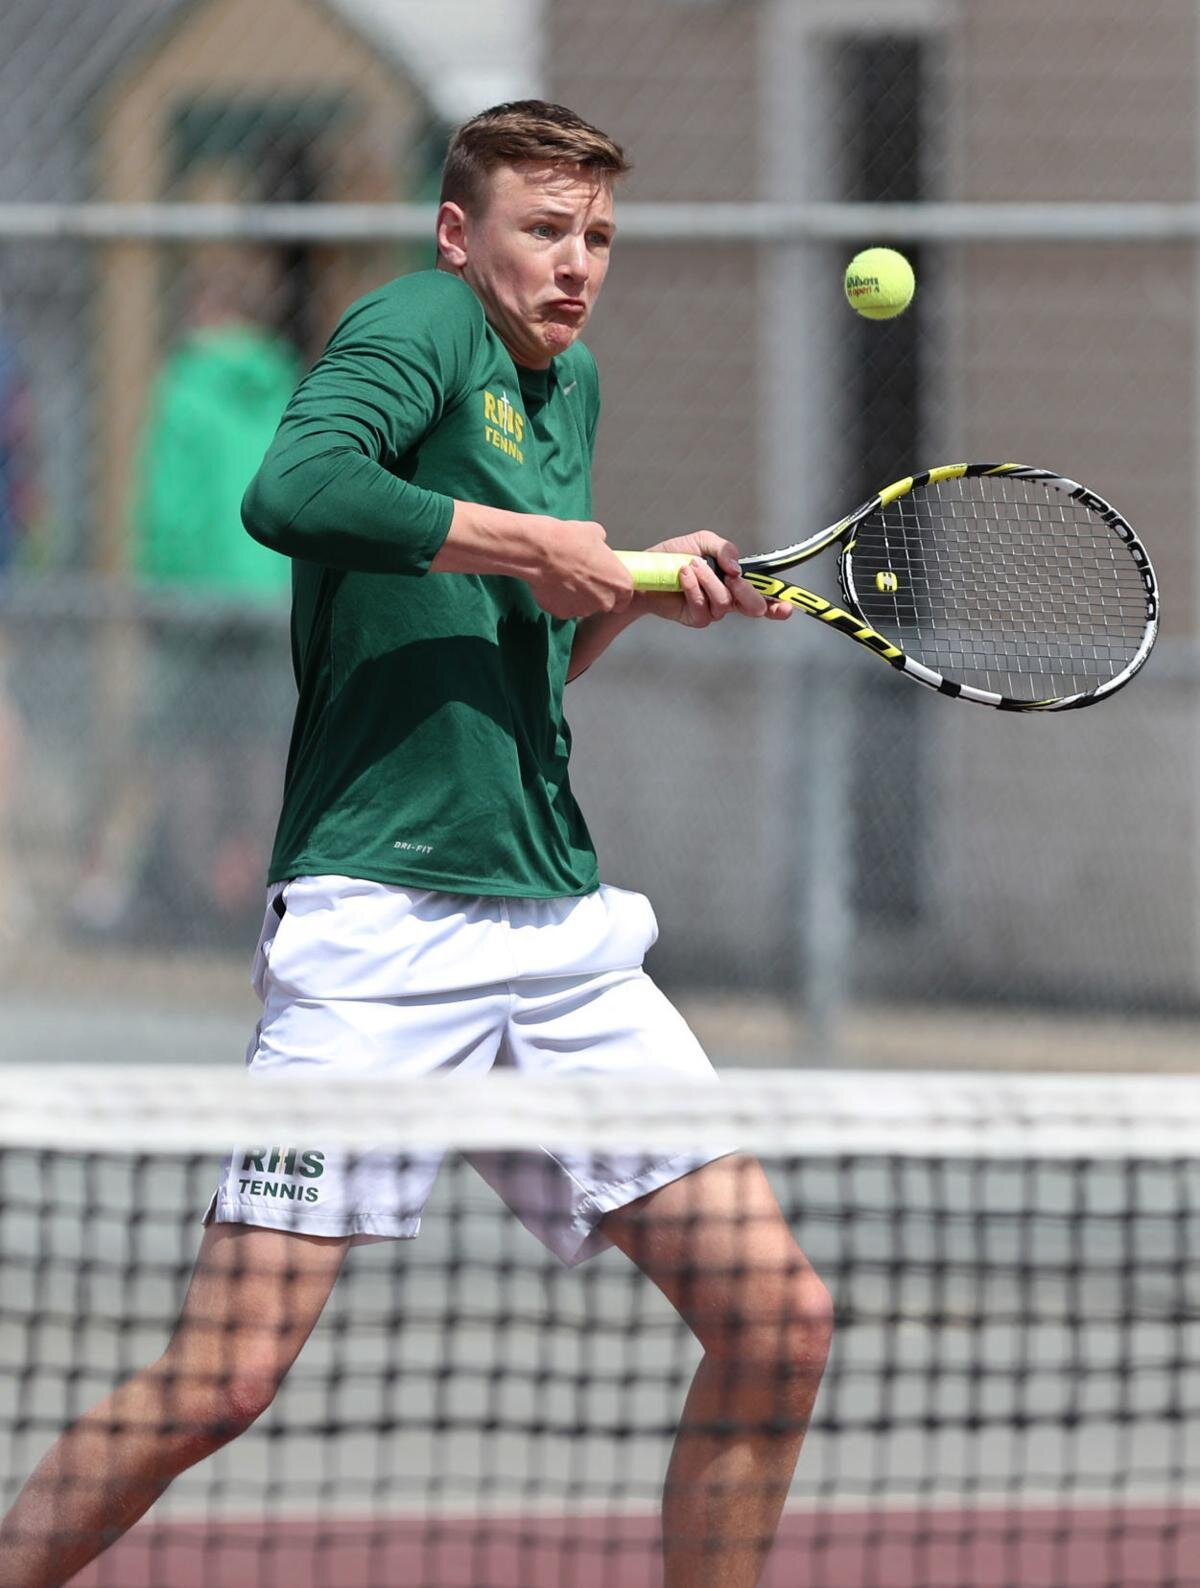 - In addition to his long days of lifting, school, work and basketball, Imbery is also a competitive tennis player for Aberdeen Roncalli.The Cavaliers moved from AA to A this season and Imbery has a good shot at doing well at the state tournament.